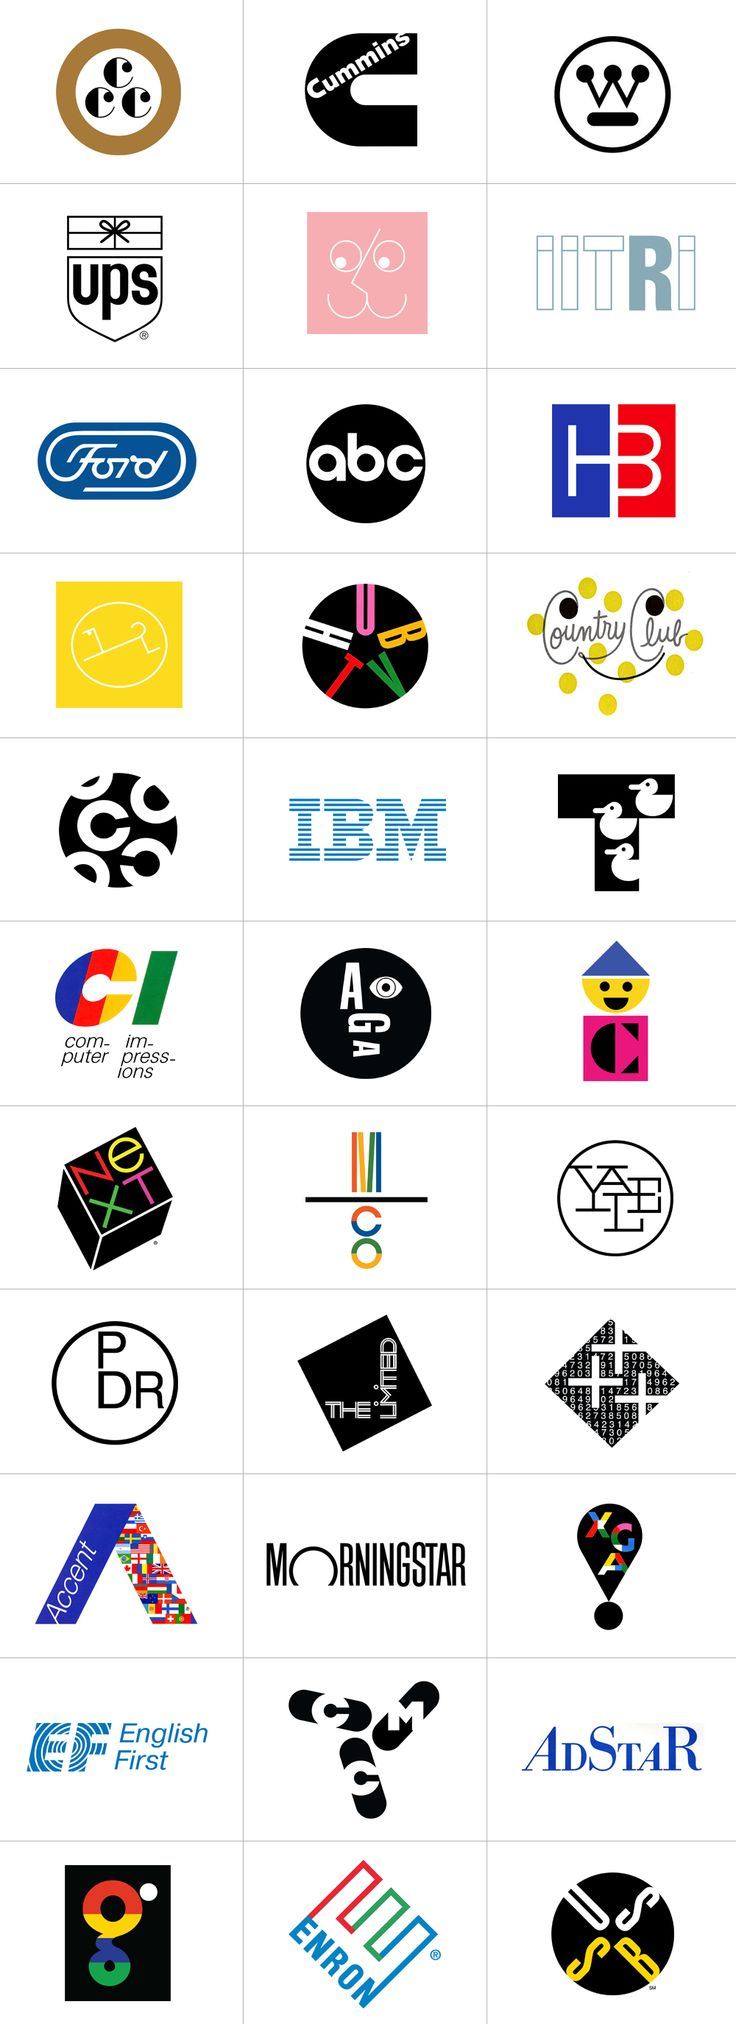 Some of the most famous Logos by Paul Rand: [Ups, Abc Television, Yale University, Enron, Westinghouse, Ibm, NeXT Apple, etc...etc..], (1938 / 1996) - Graphic Design by Paul Rand (b. 1914 - d. 1996, American) - [P. RAND part.2].